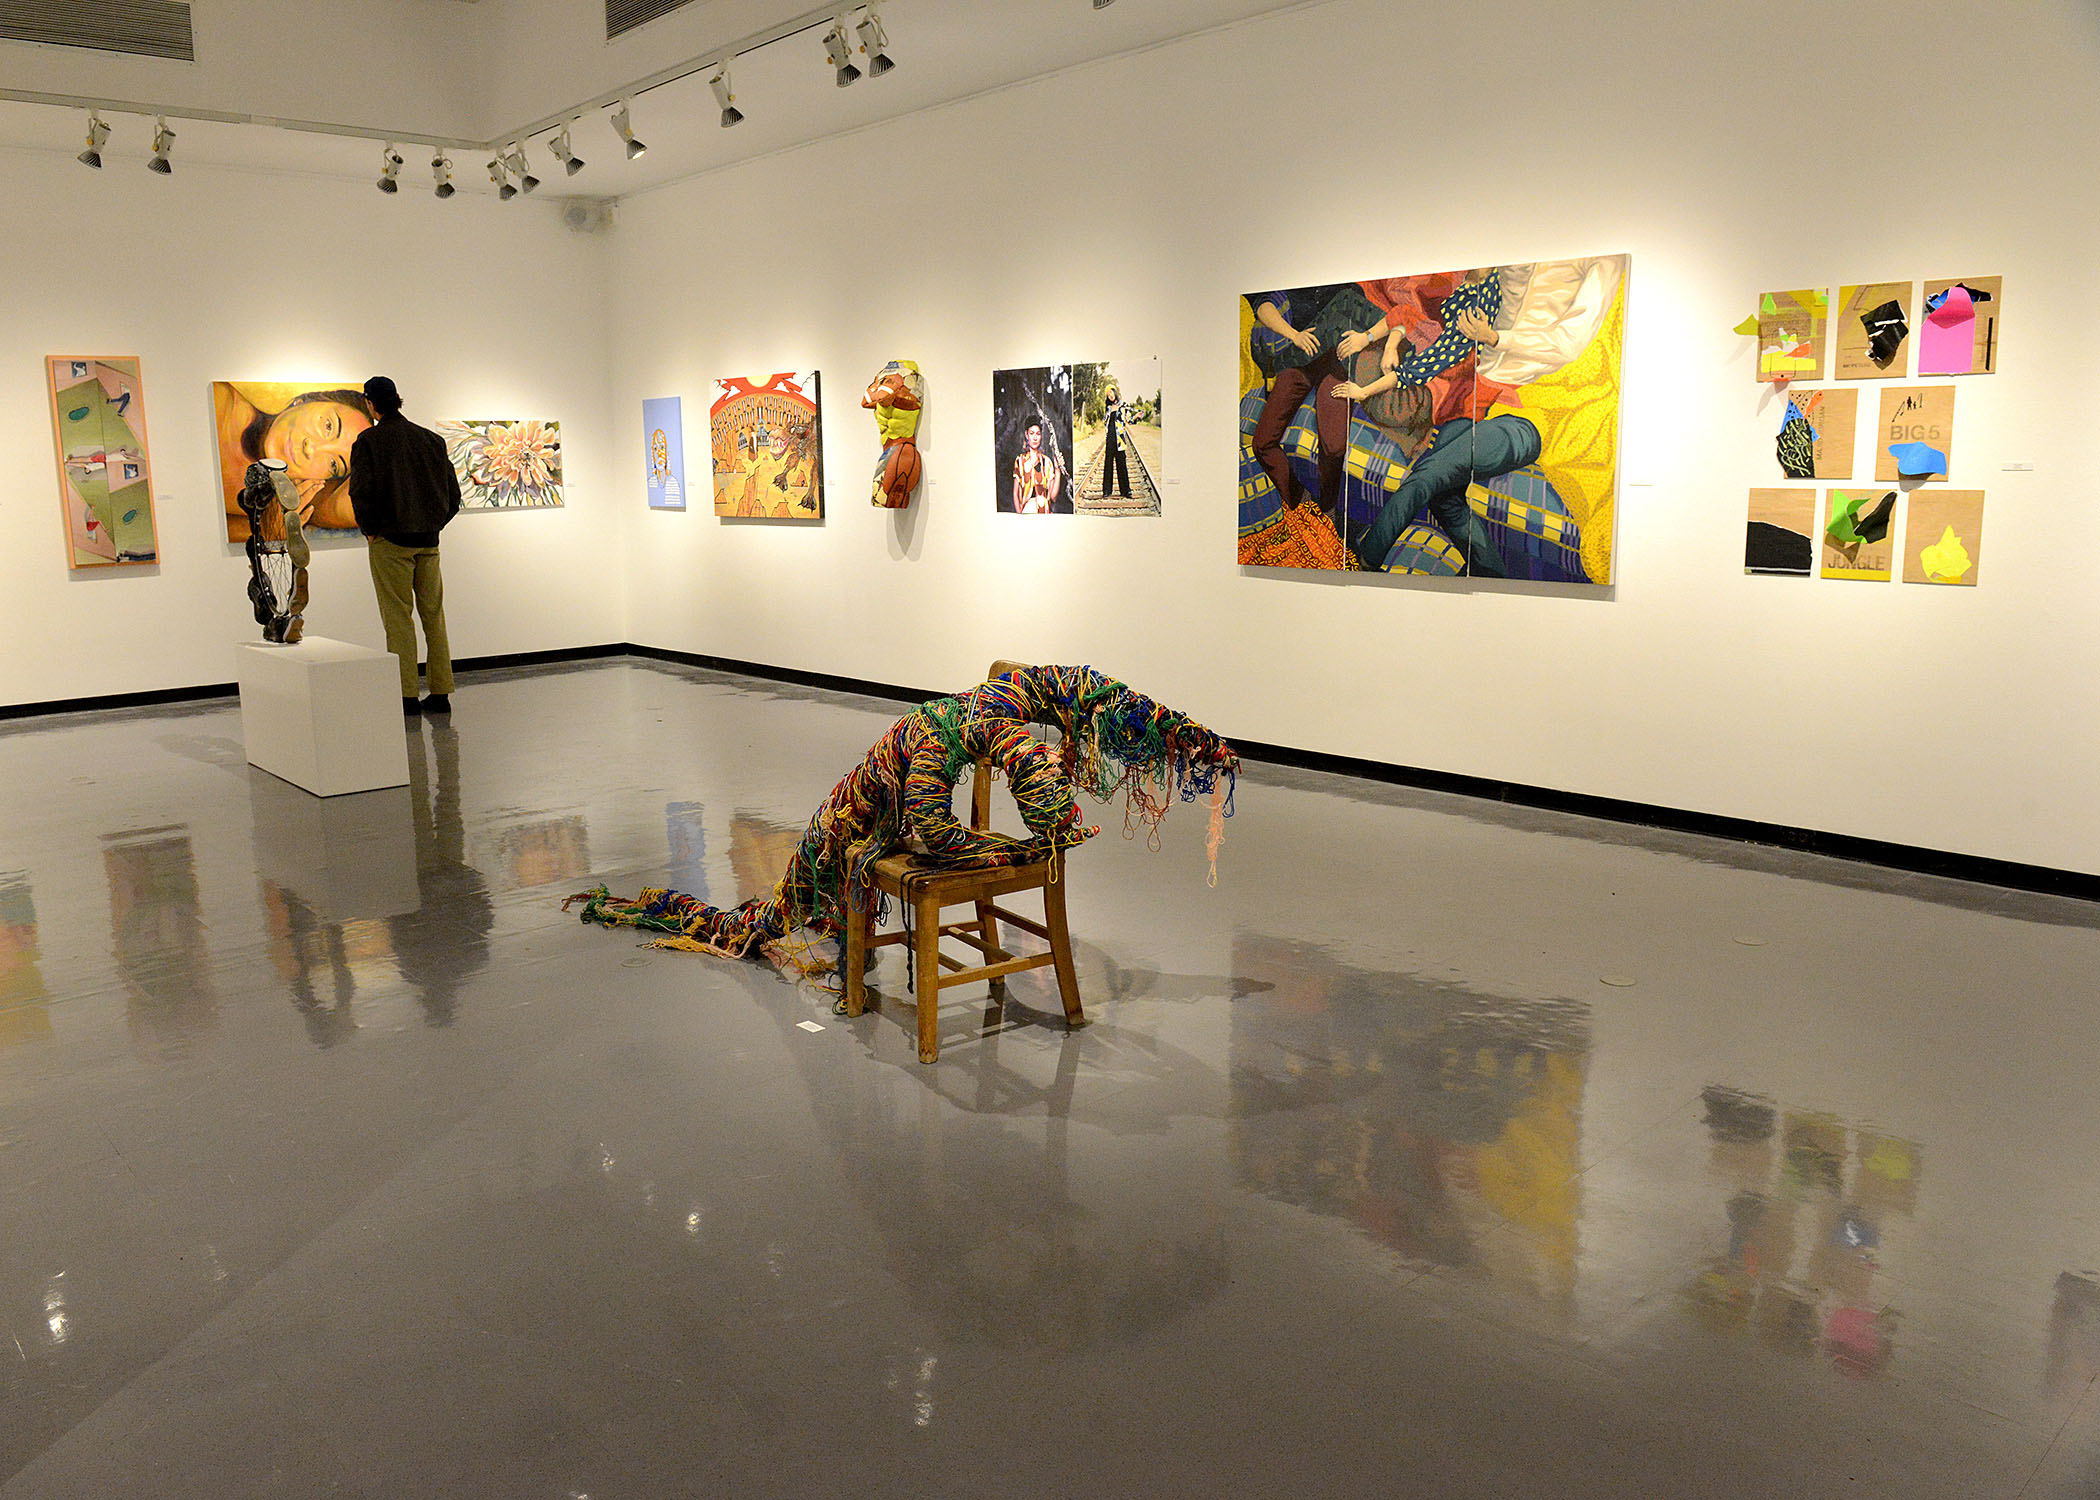 Gallery set up with 2018 Juried Student Art Show